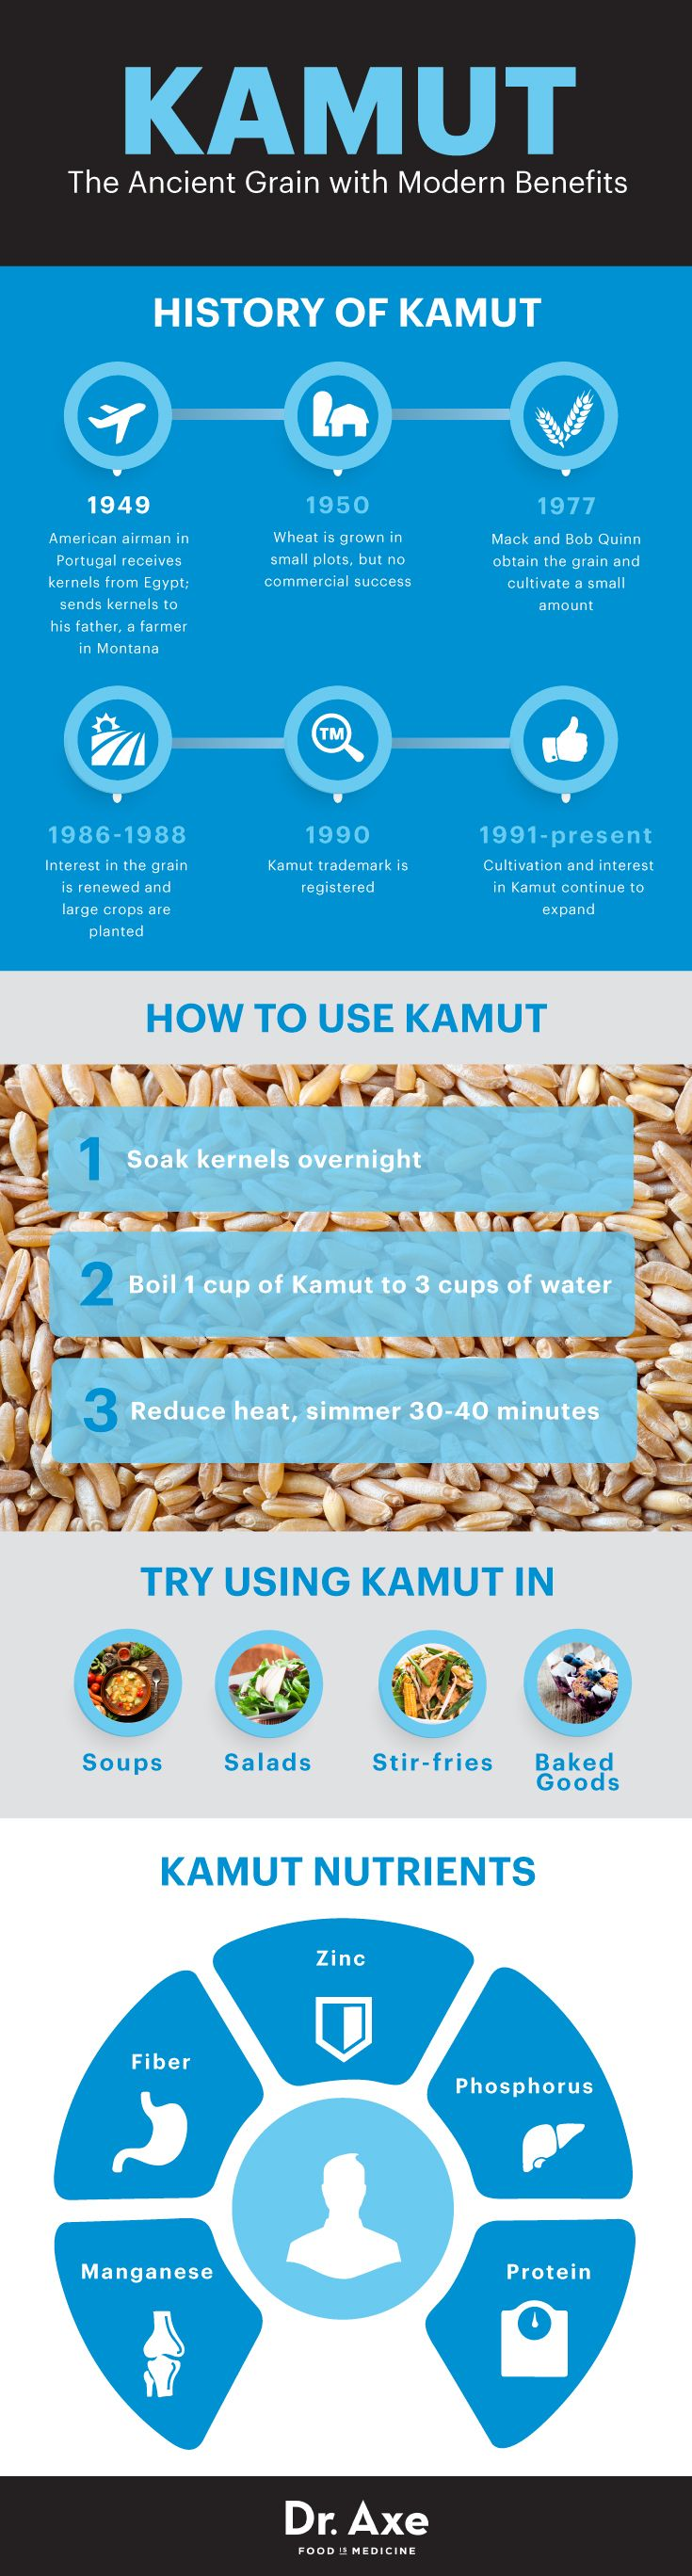 Kamut history - Dr. Axe http://www.draxe.com #health #holistic #natural